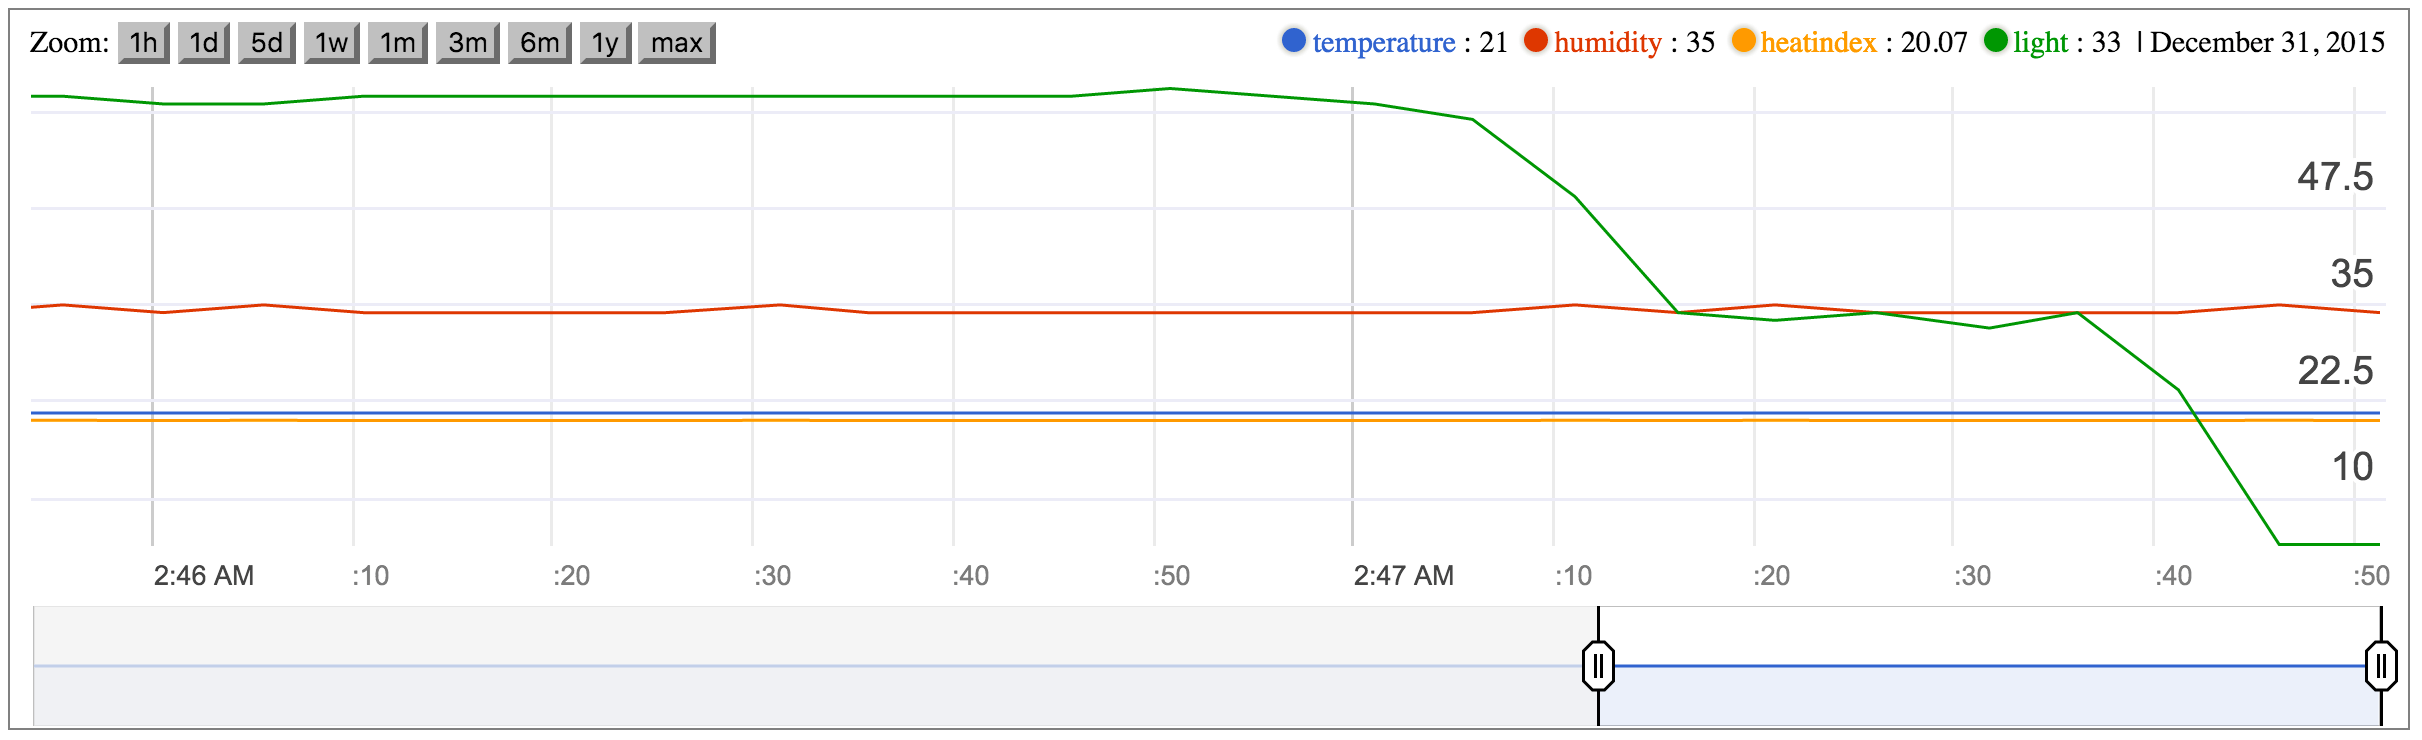 Weather Station - DHT11, MQTT, Node-RED, Google Chart, Oh My